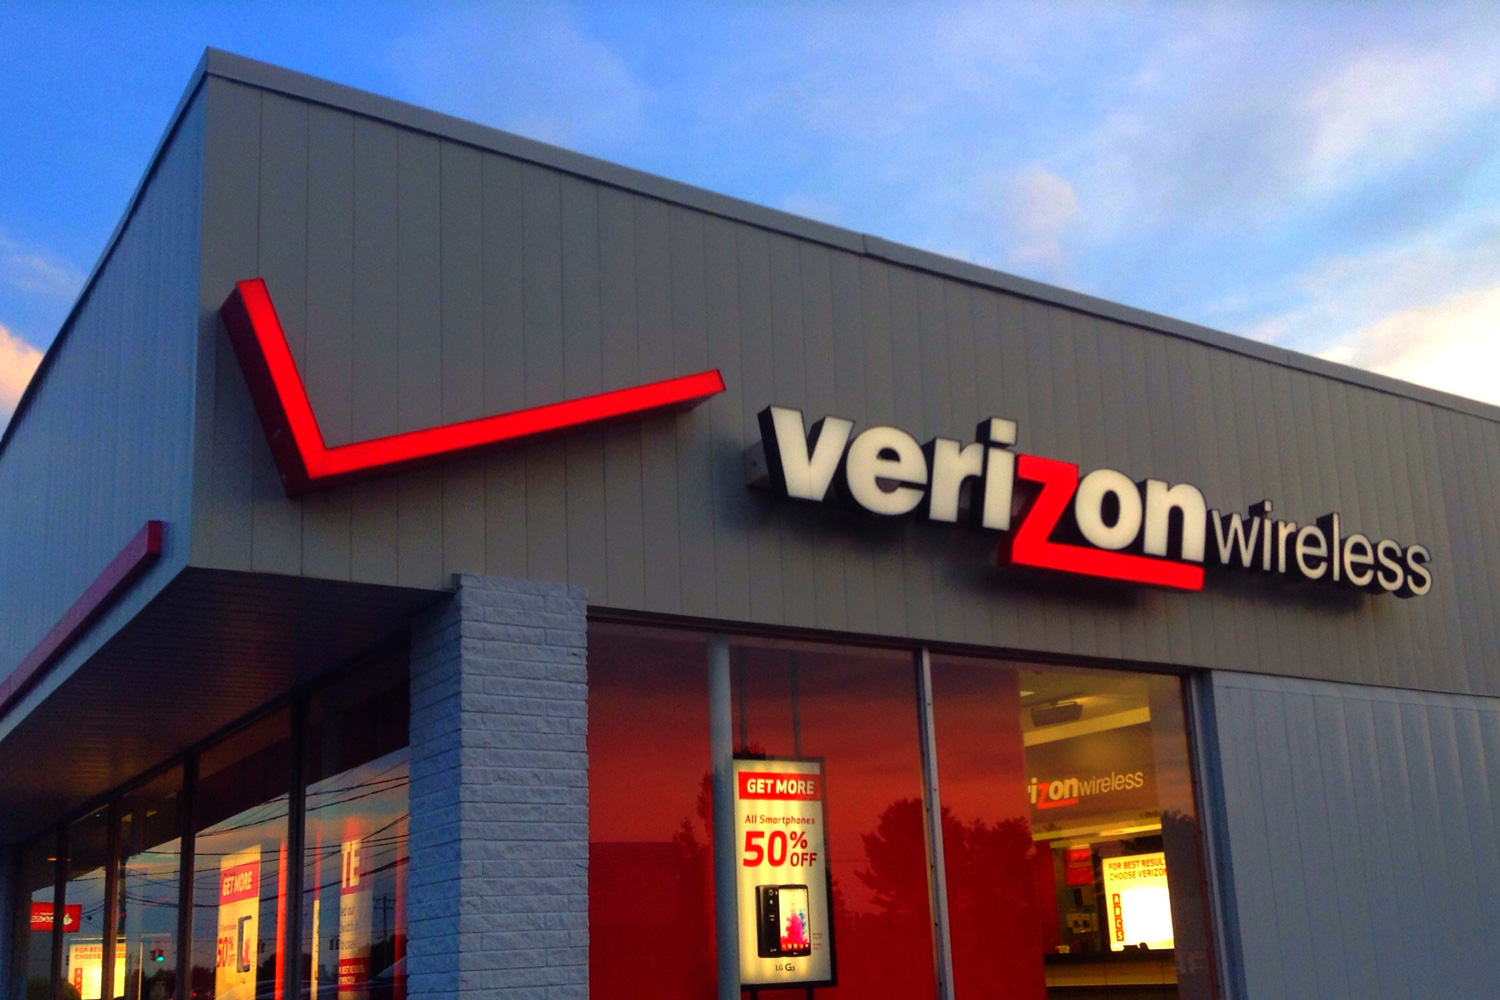 Verizon's Q4 subscriber growth drives earnings beat